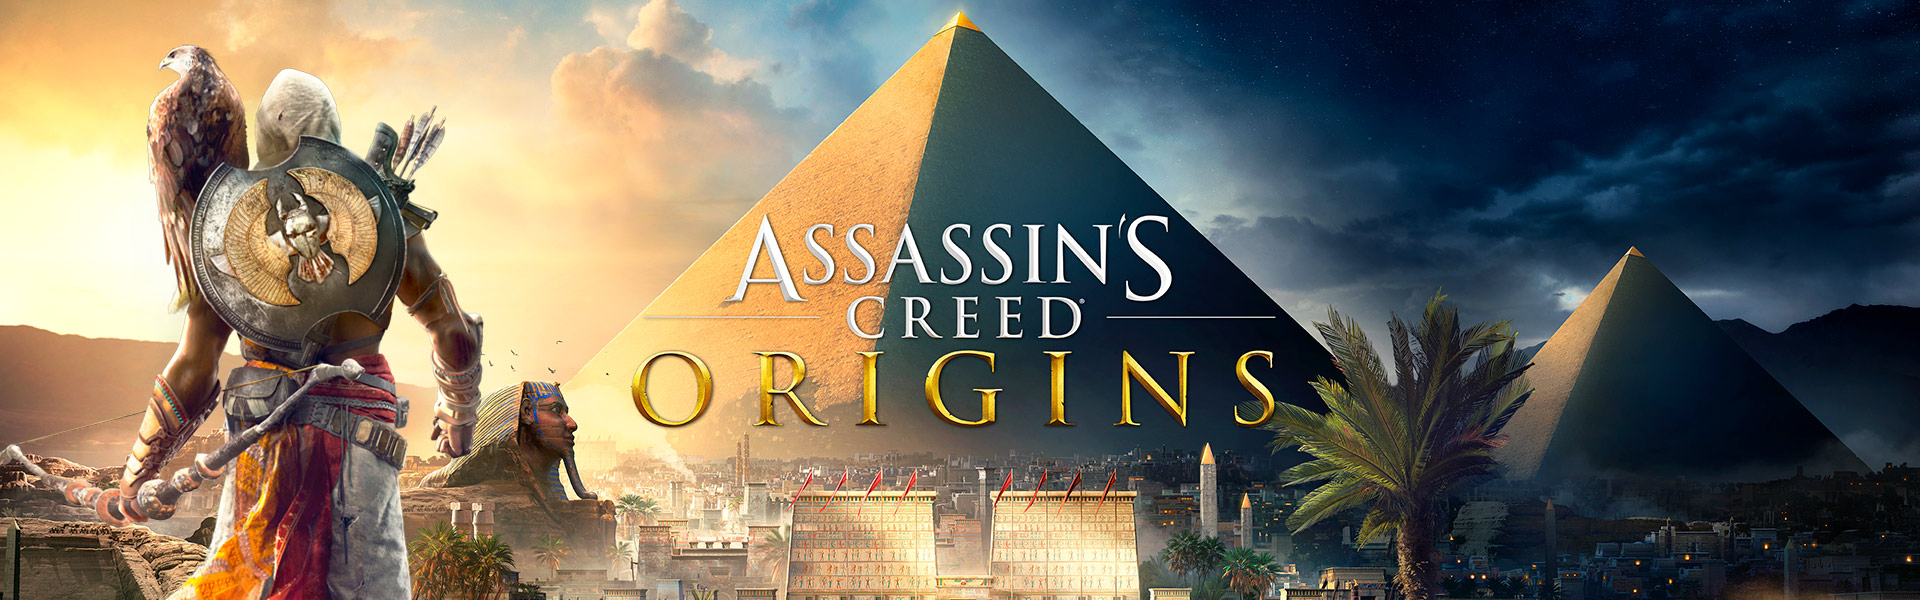 Impresiones Assassin´s Creed Origin